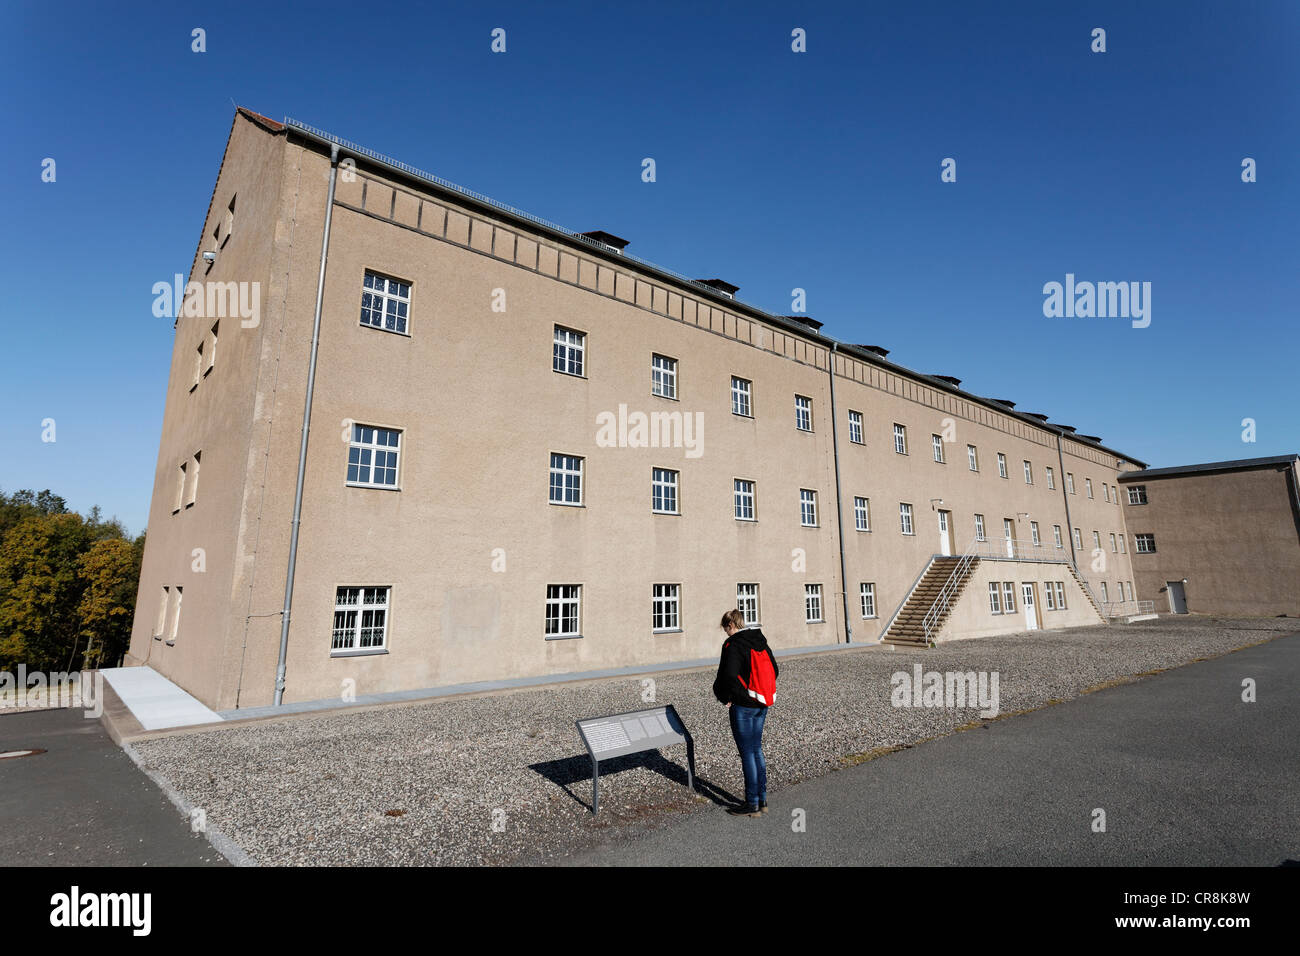 Chamber building or depot of possessions, Buchenwald memorial, former concentration camp near Weimar, Thuringia, - Stock Image